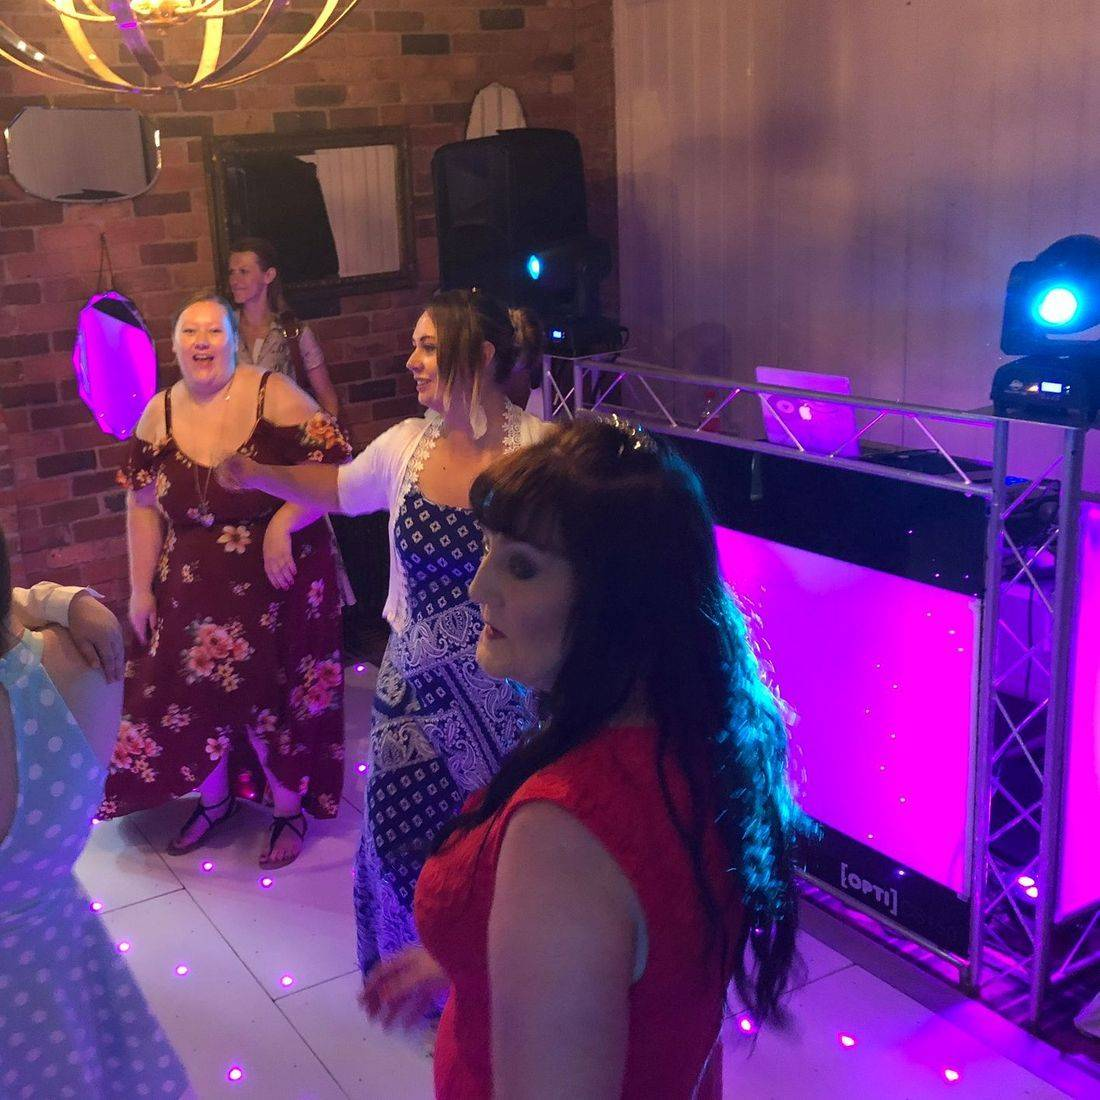 #Worcesterhsire #wedding #dj #weddingentertainment #barn #barnwedding #leddancefloor